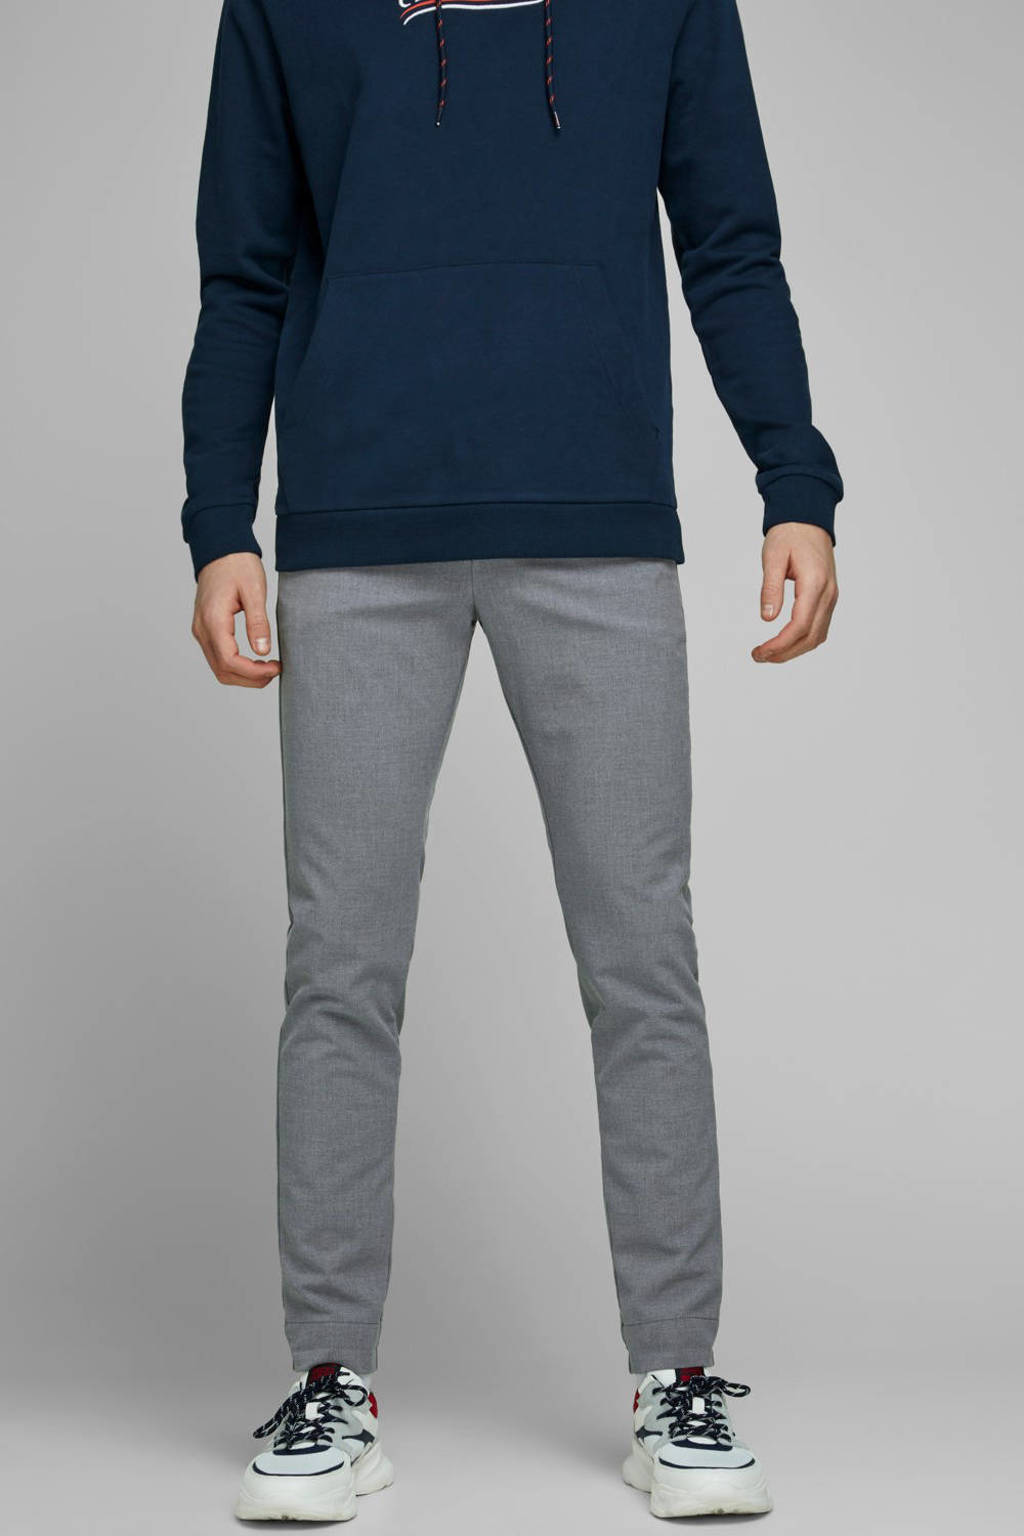 JACK & JONES JEANS INTELLIGENCE slim fit pantalon Marco grijsblauw, Grijsblauw